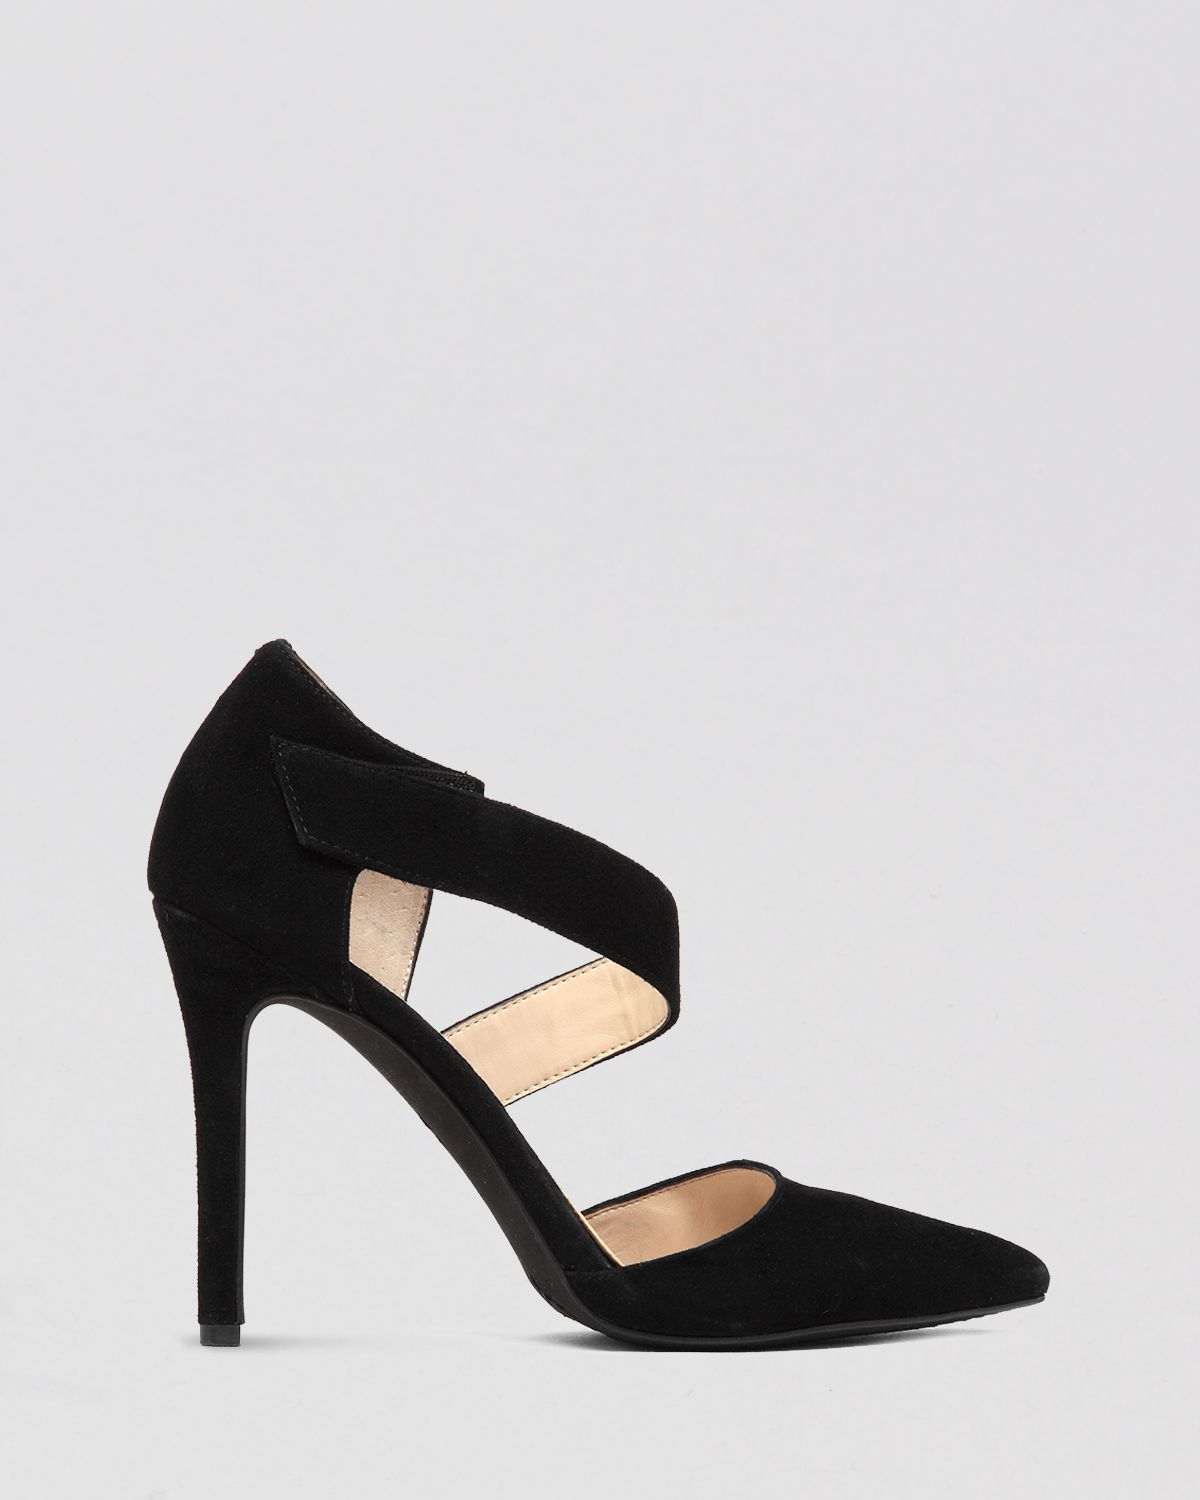 Vince Camuto Pointed Toe Evening Pumps Carlotte High